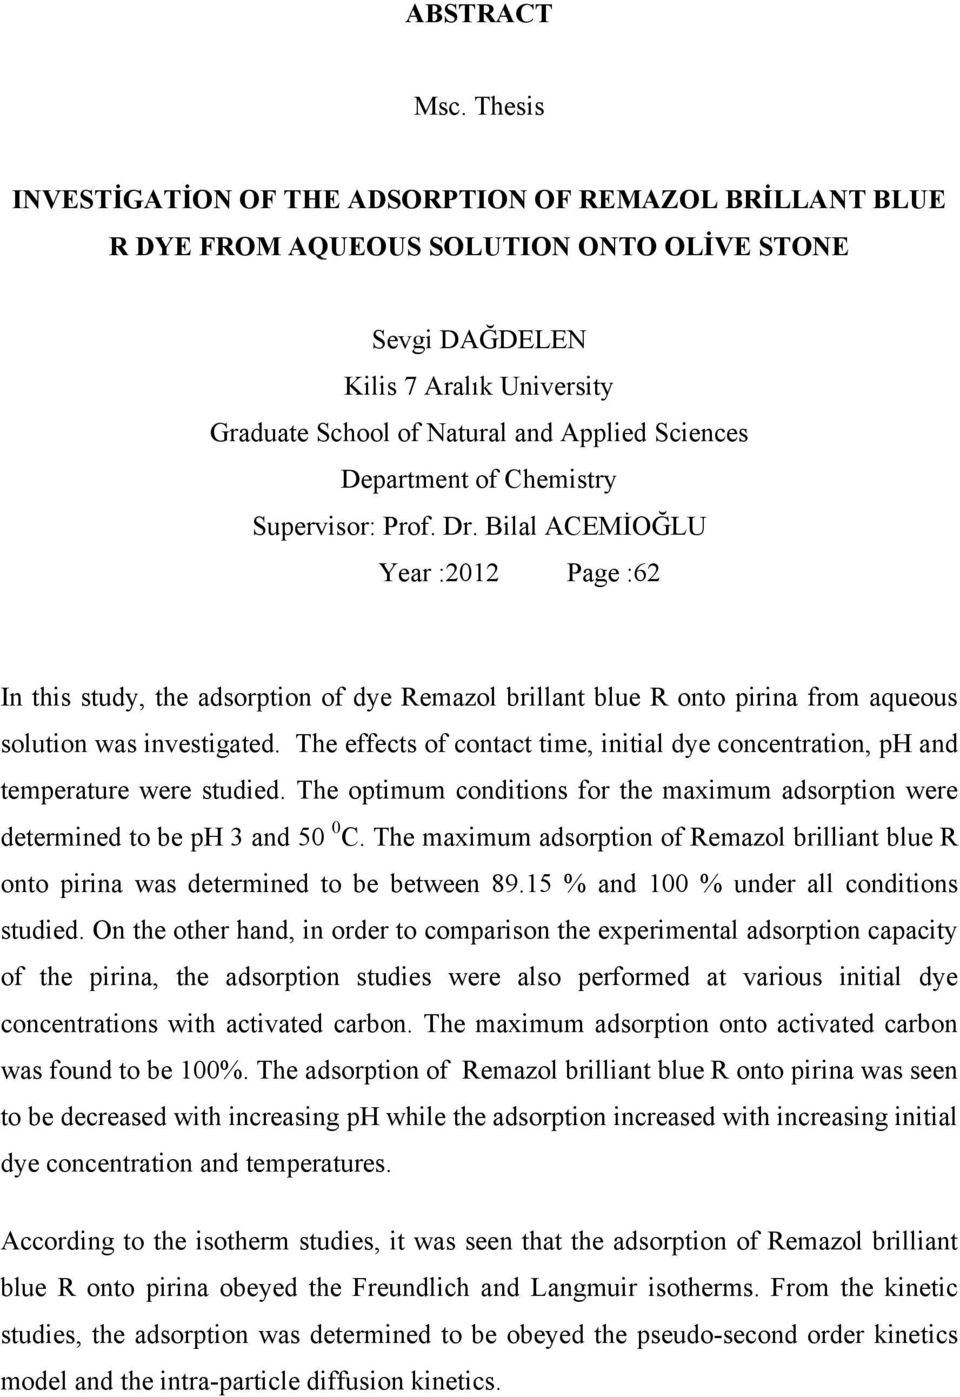 Department of Chemistry Supervisor: Prof. Dr. Bilal ACEMİOĞLU Year :2012 Page :62 In this study, the adsorption of dye Remazol brillant blue R onto pirina from aqueous solution was investigated.